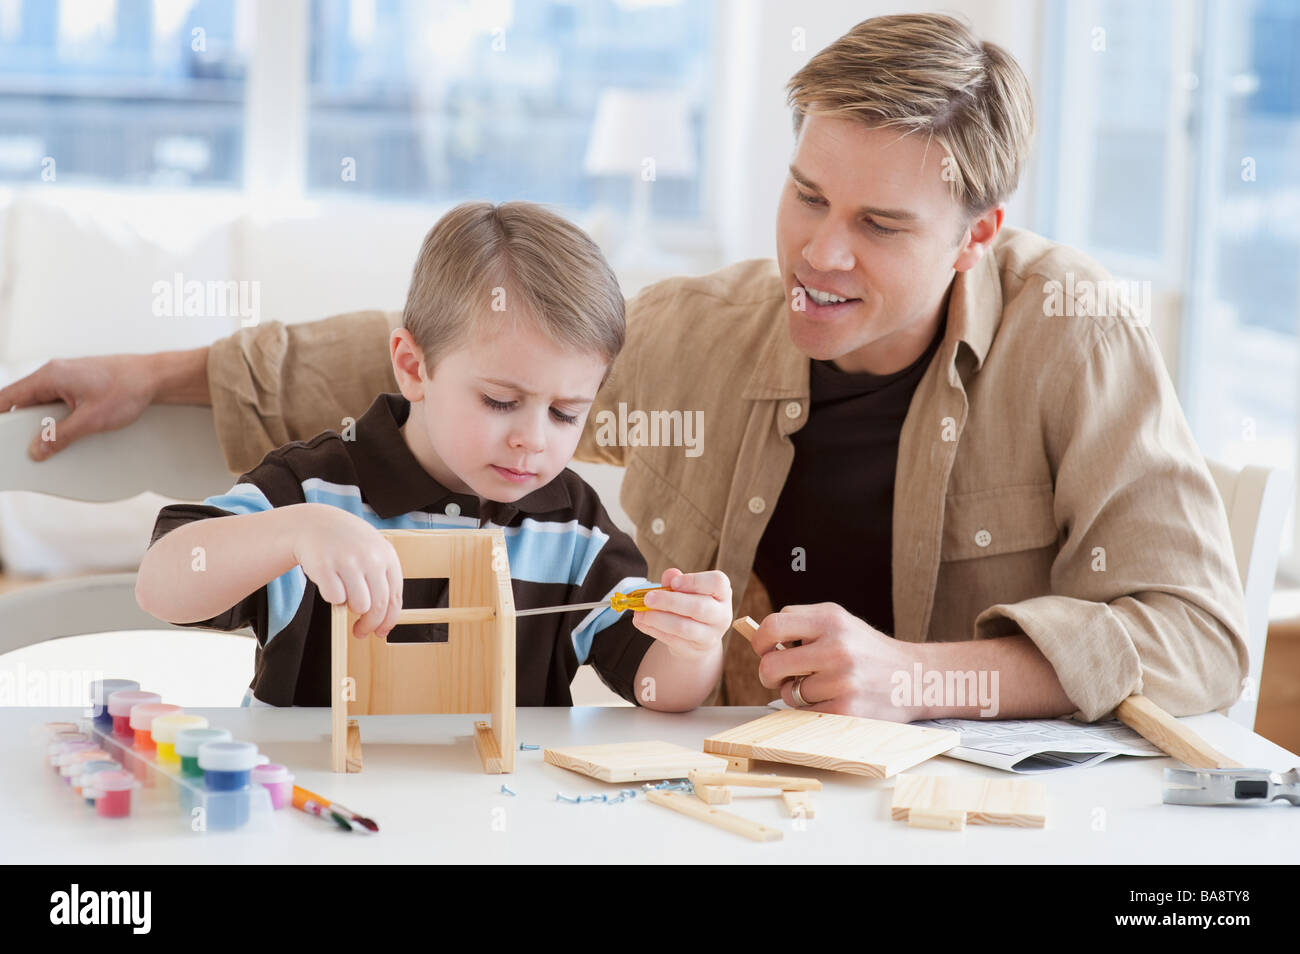 Father and son building wooden model - Stock Image